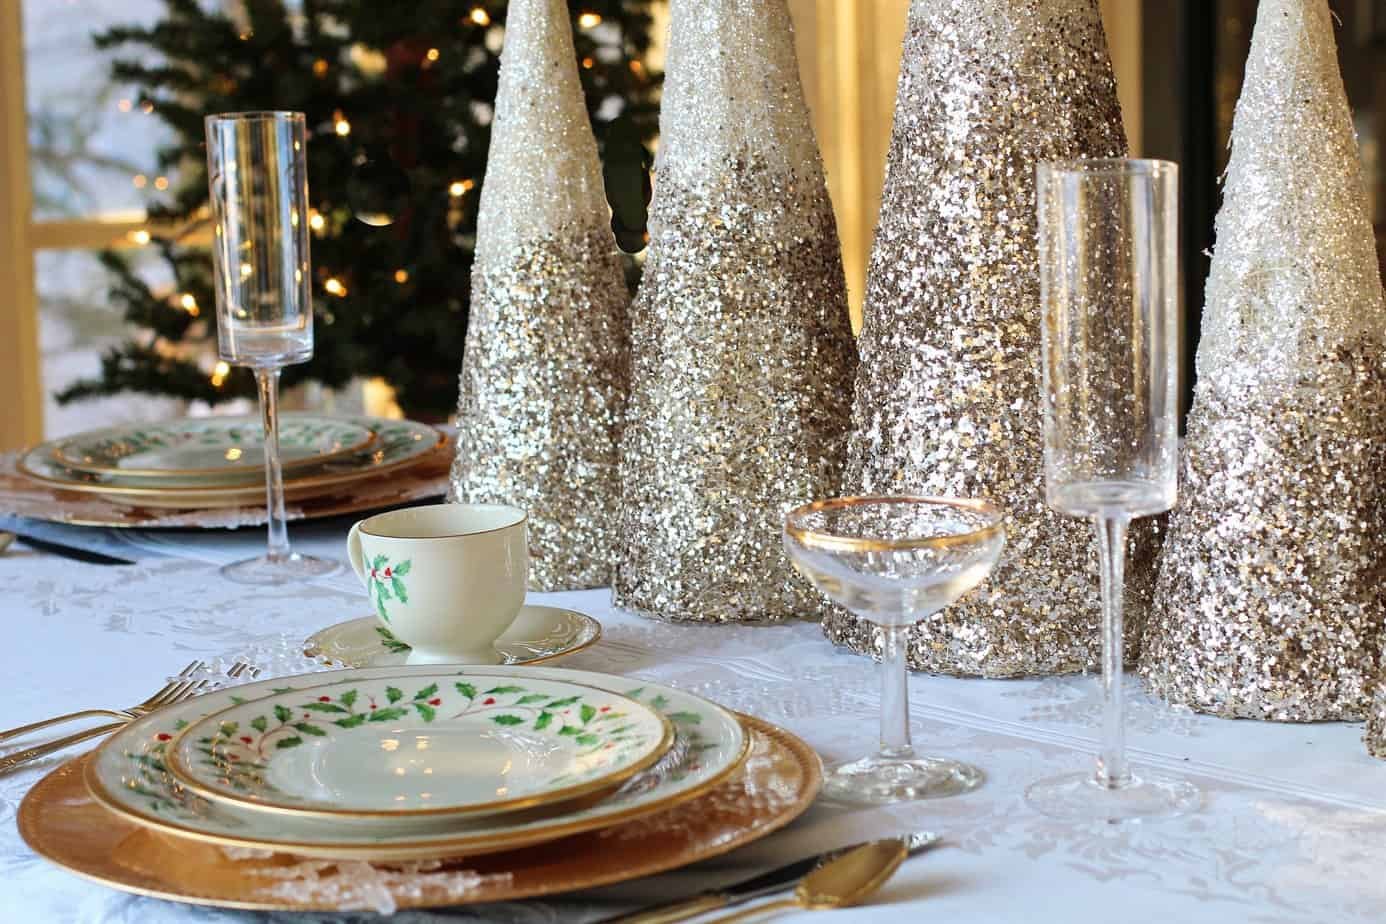 Place setting Lenox china with holly and gold rim on table decorated for the holidays.